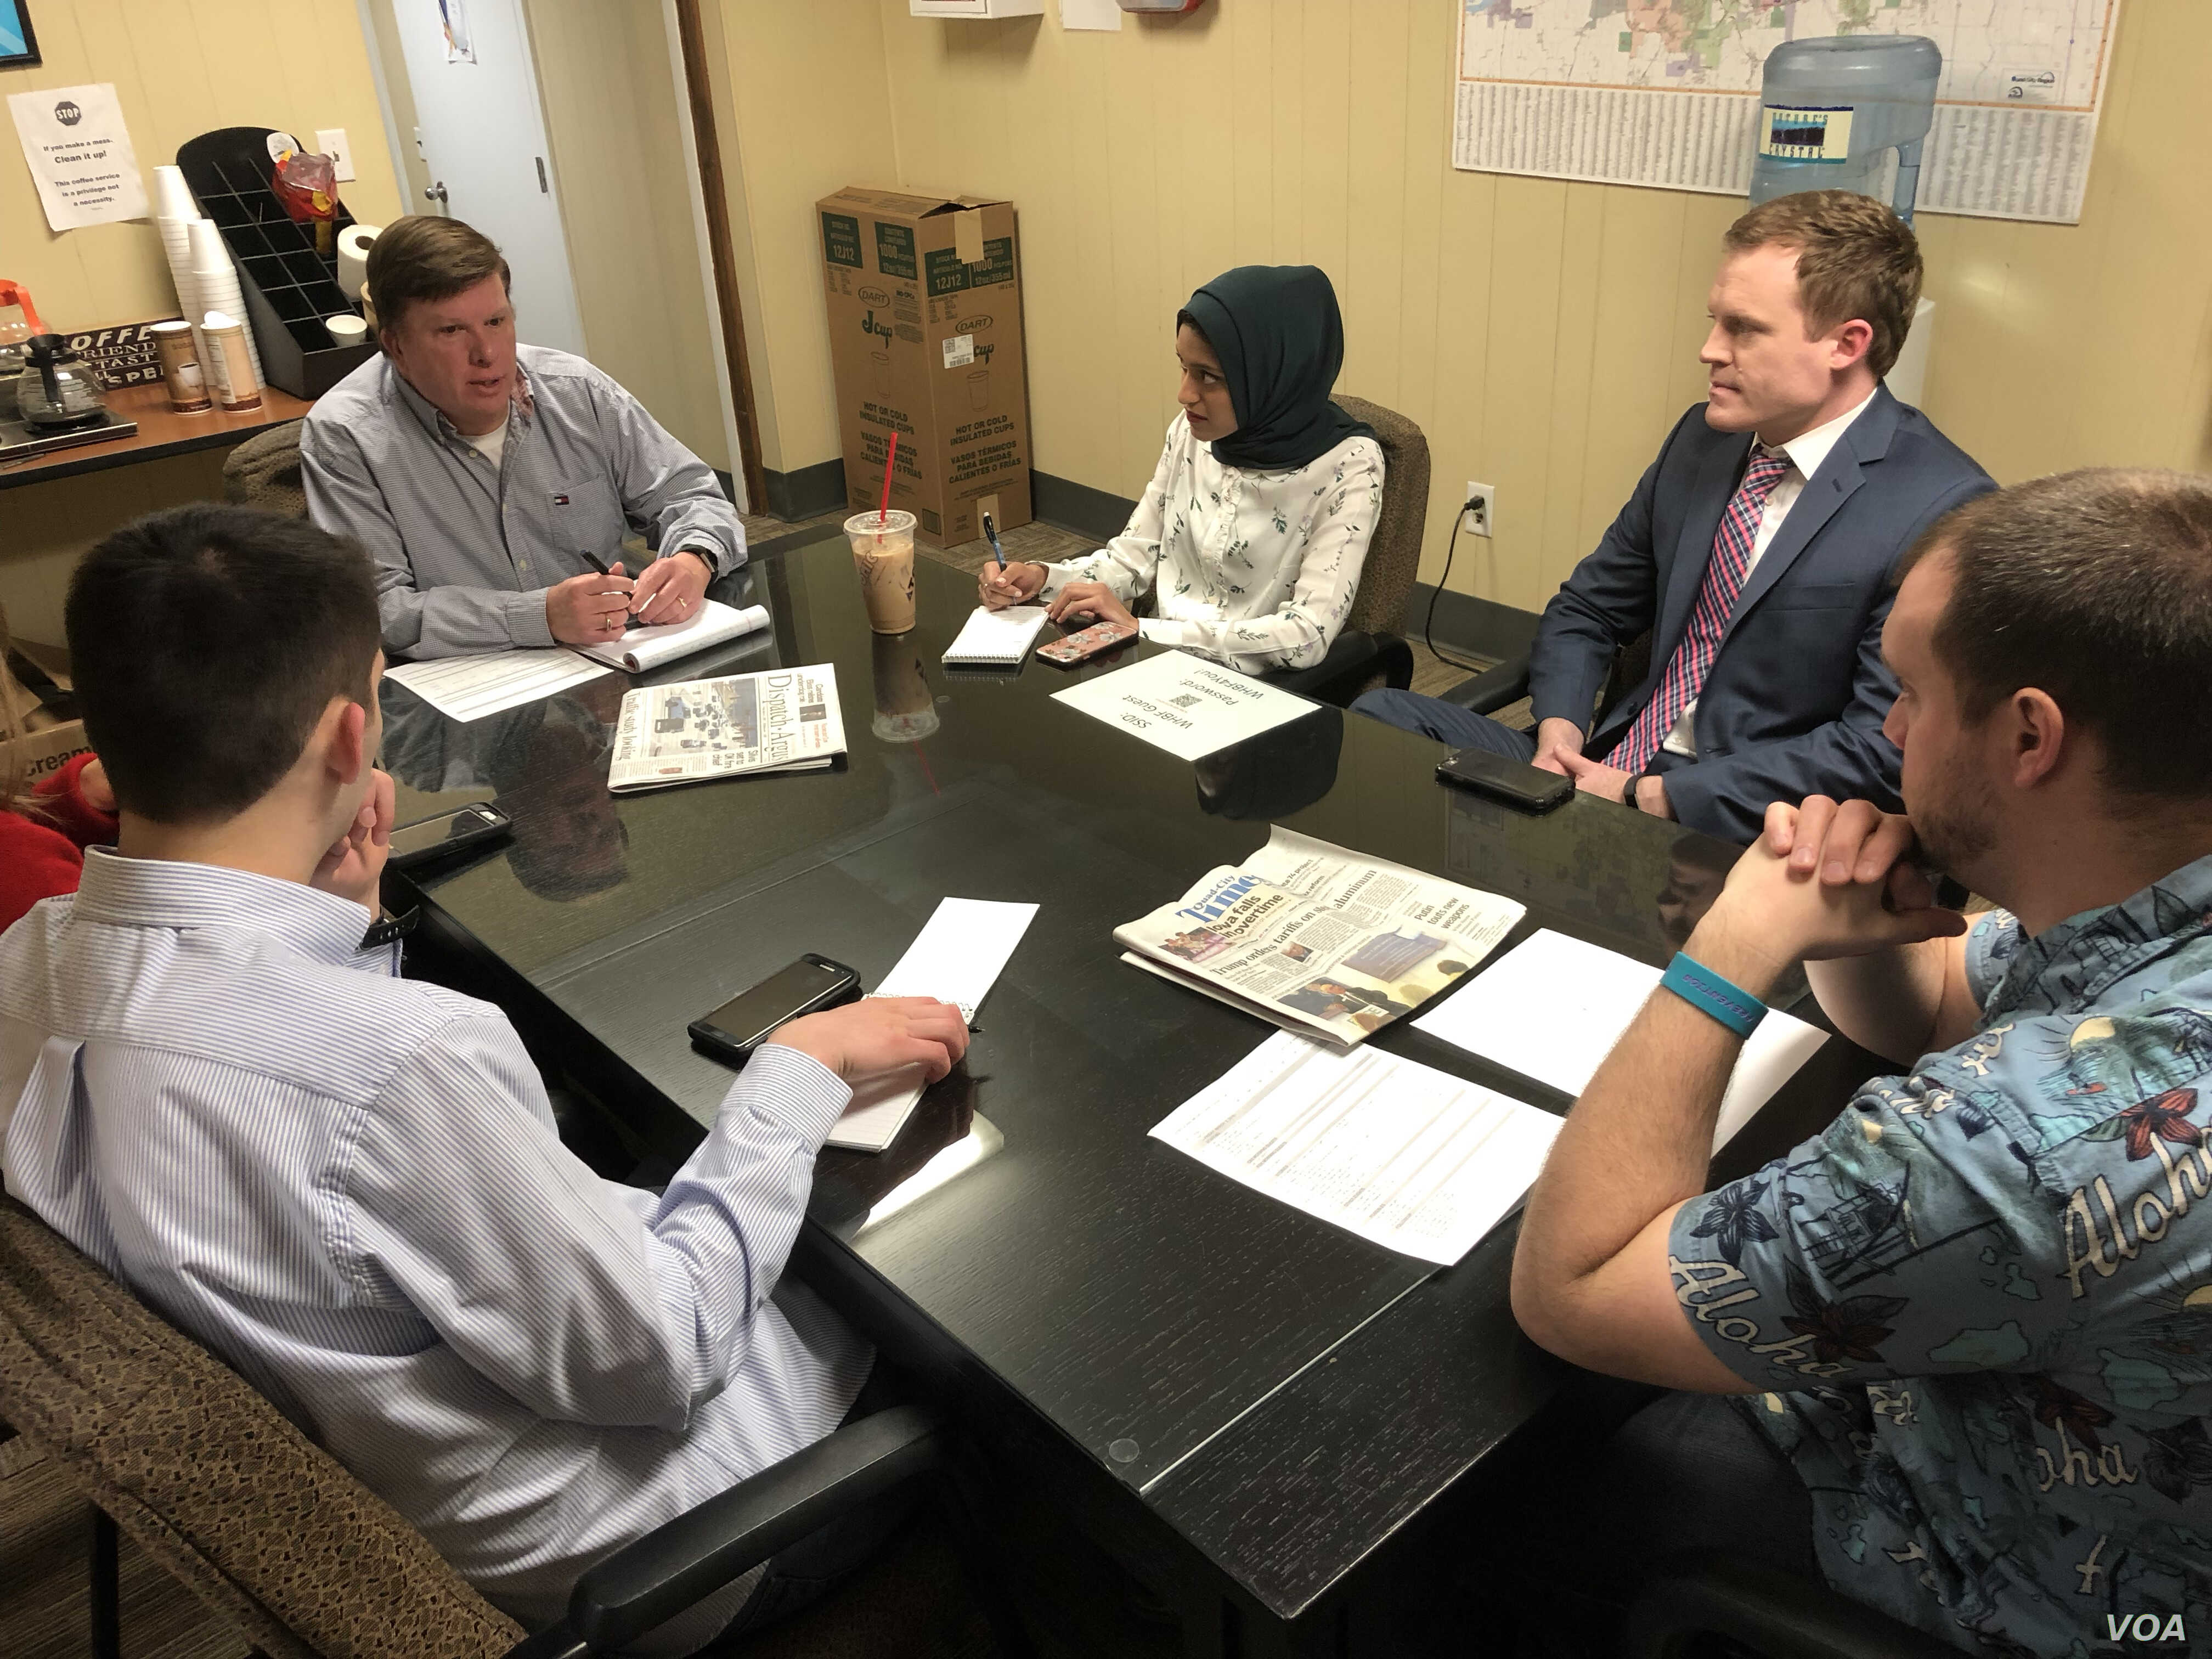 WHBF-TV News Director Mike Mickle and the news team discuss potential assignments at a morning editorial meeting.